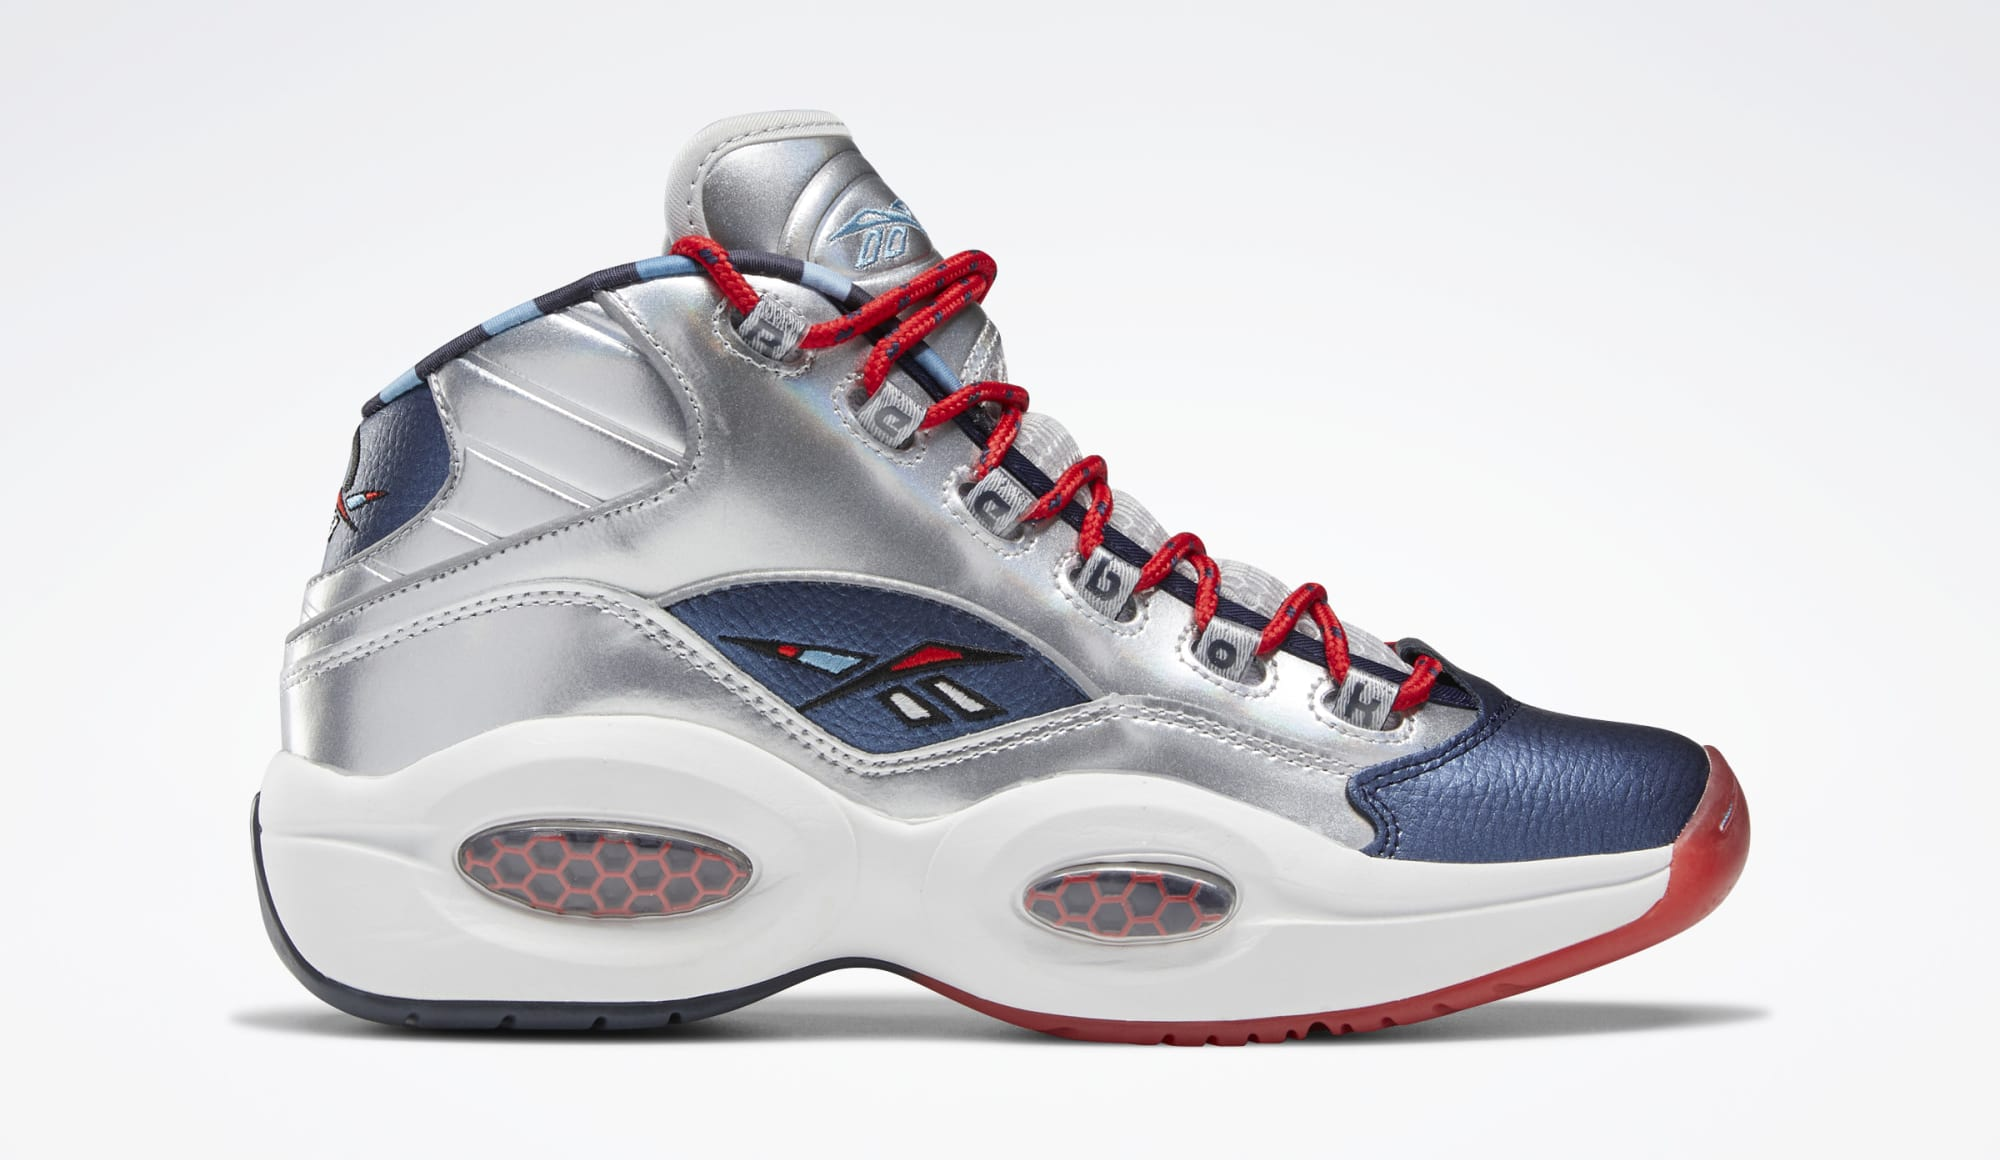 Reebok Question Mid 'Crossed Up, Step Back' FZ1366 Lateral